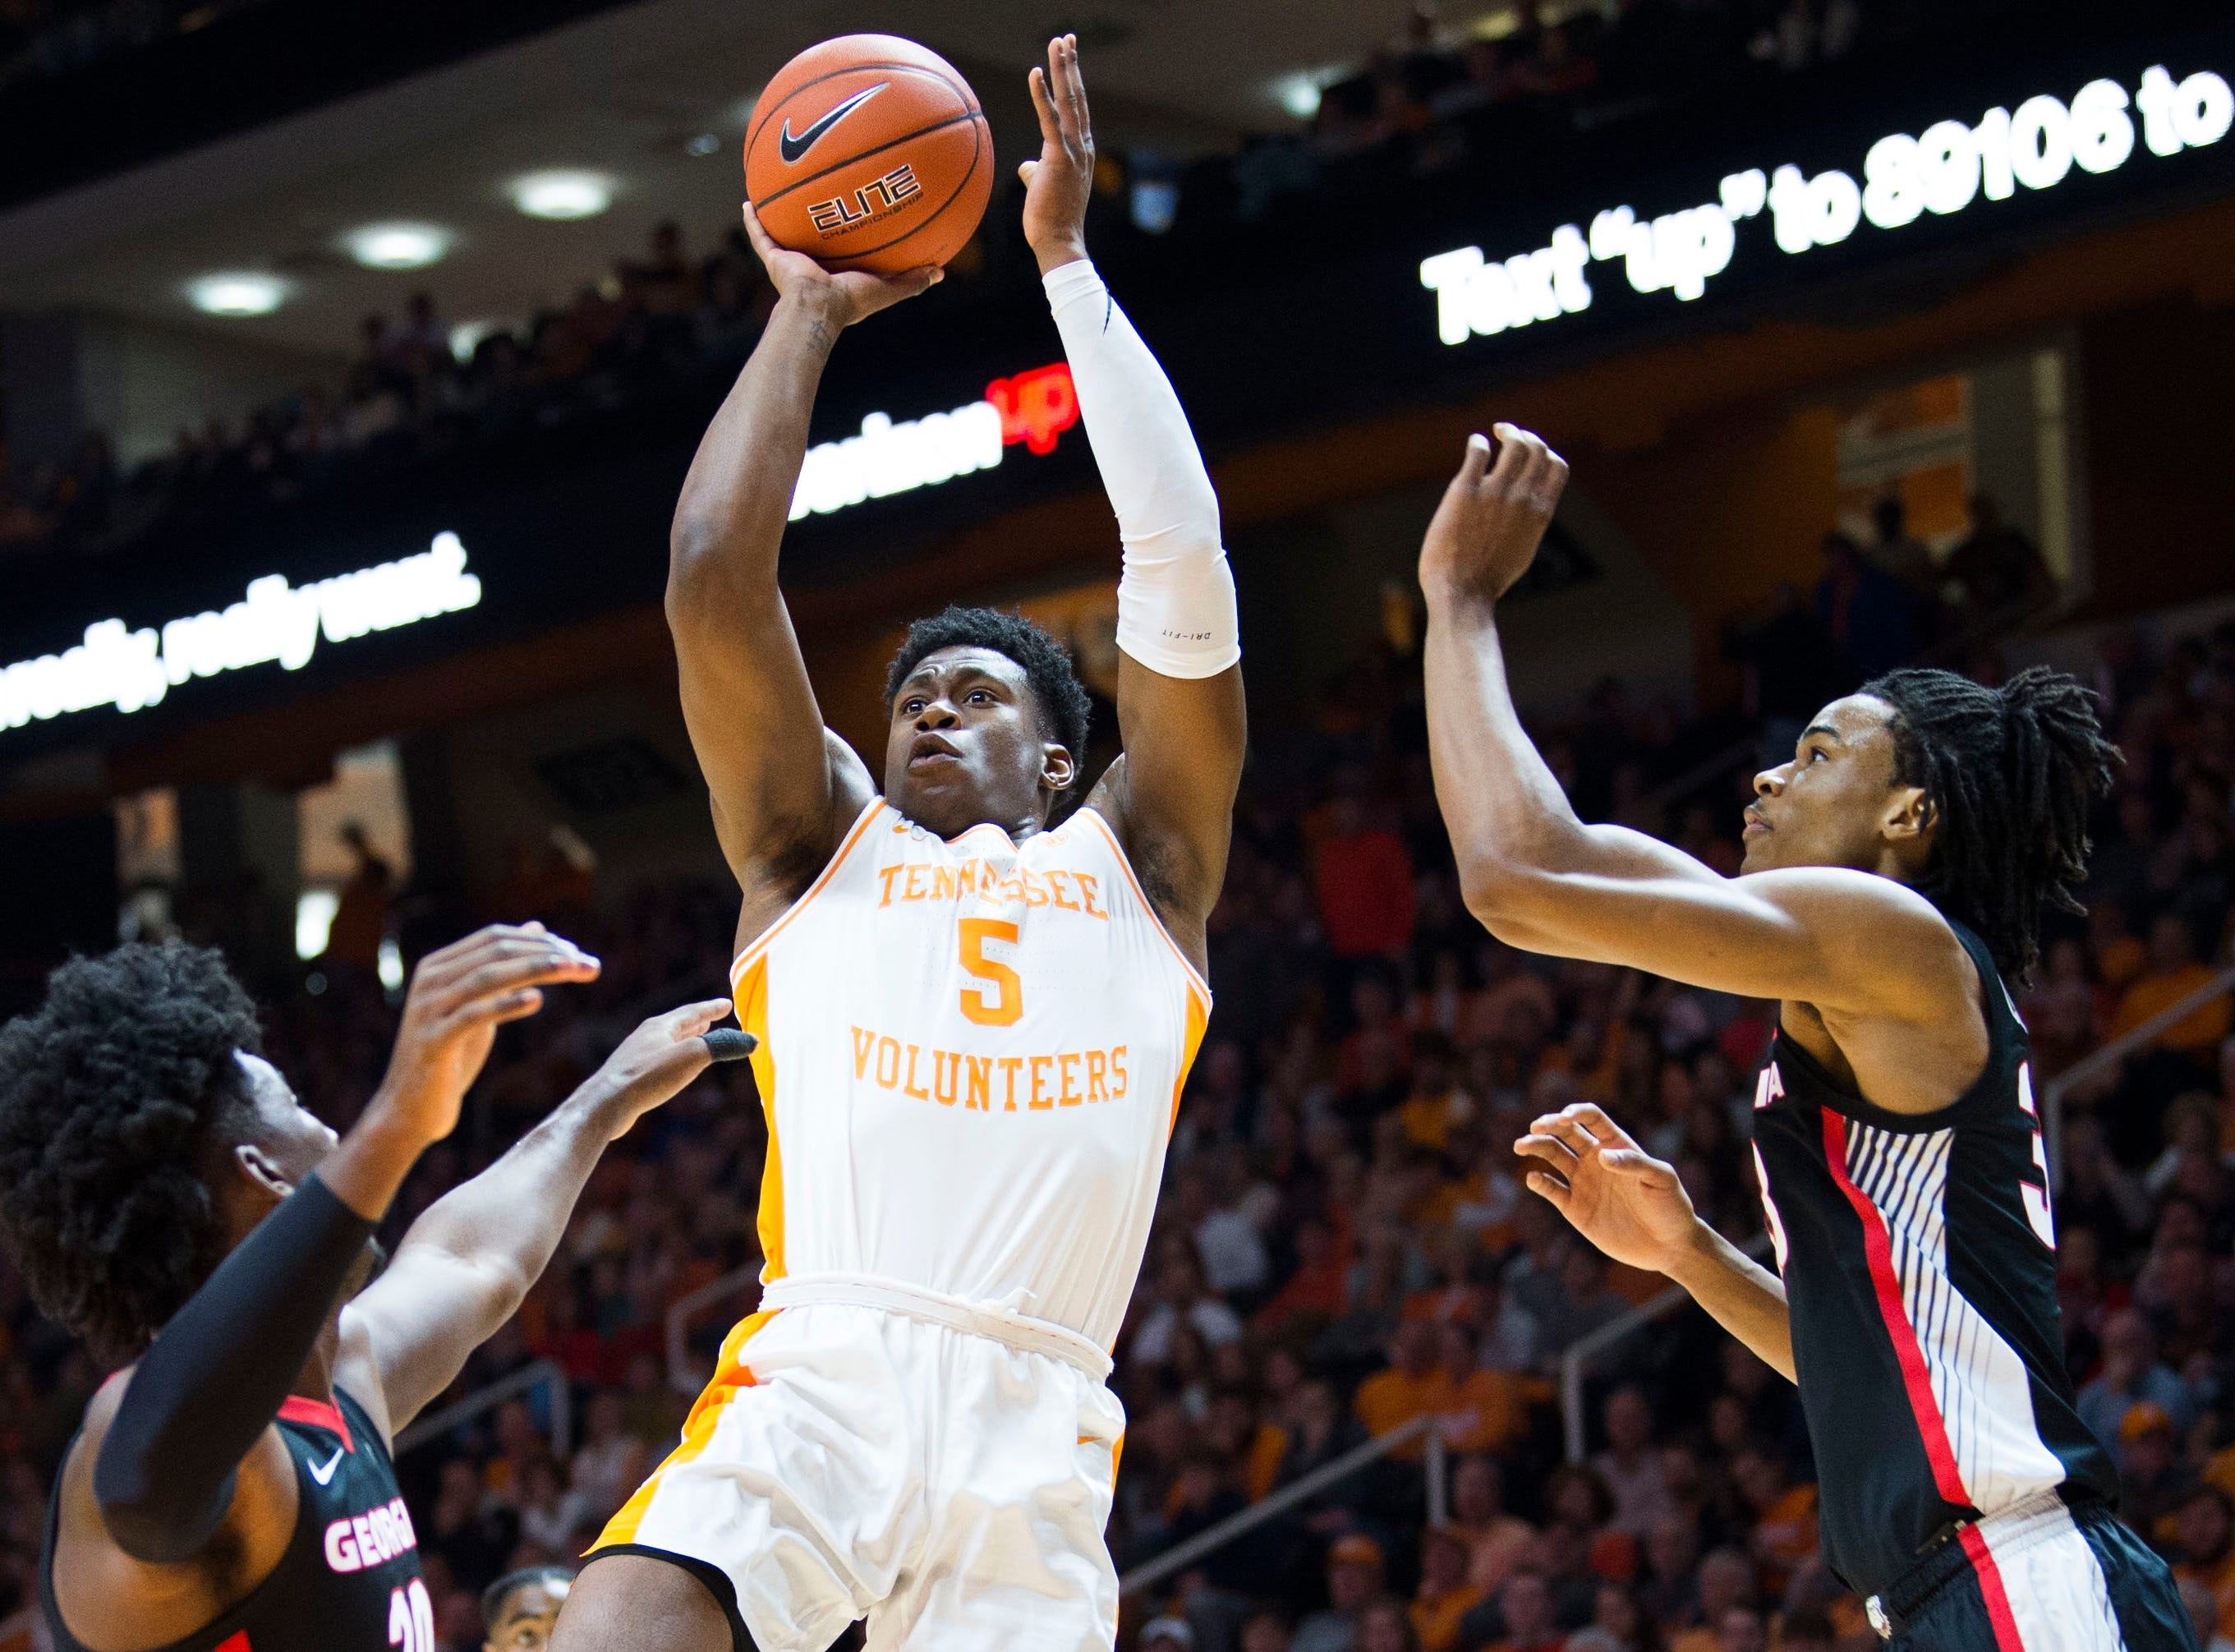 Tennessee's Admiral Schofield (5) takes a shot during a college basketball game between Tennessee and Georgia at Thompson-Boling Arena Saturday, Jan. 5, 2019.